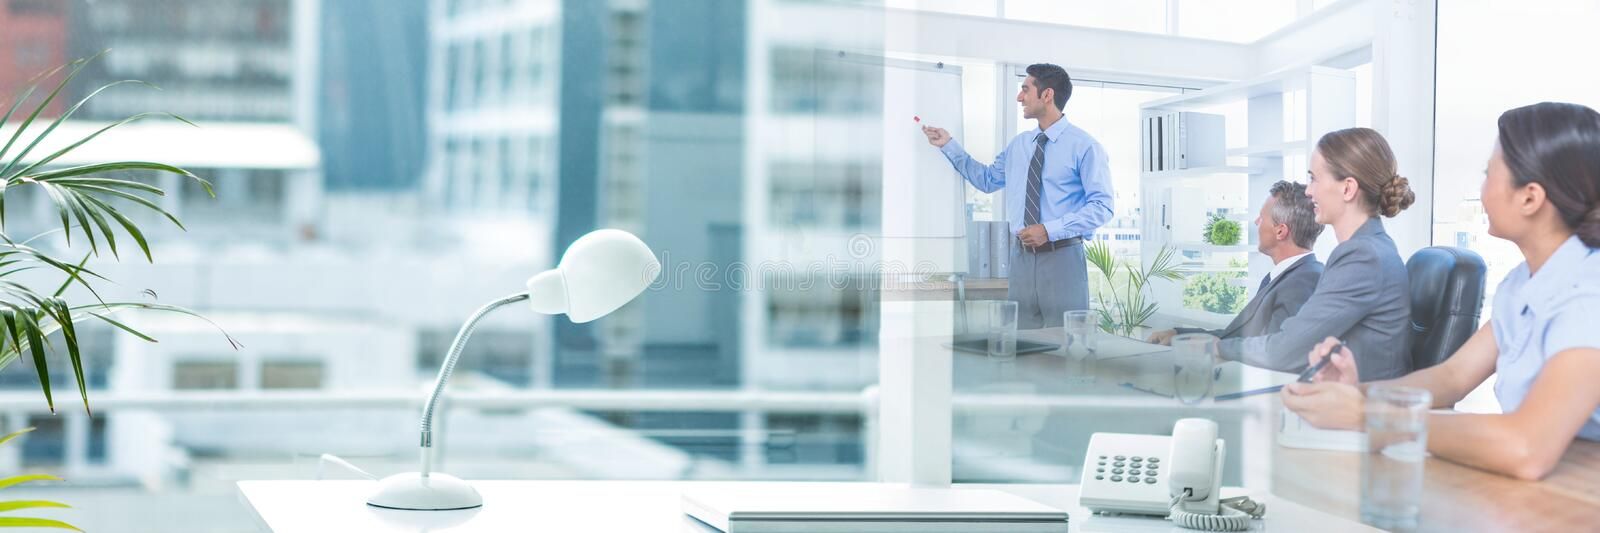 Business people having a meeting with office transition effect royalty free stock images